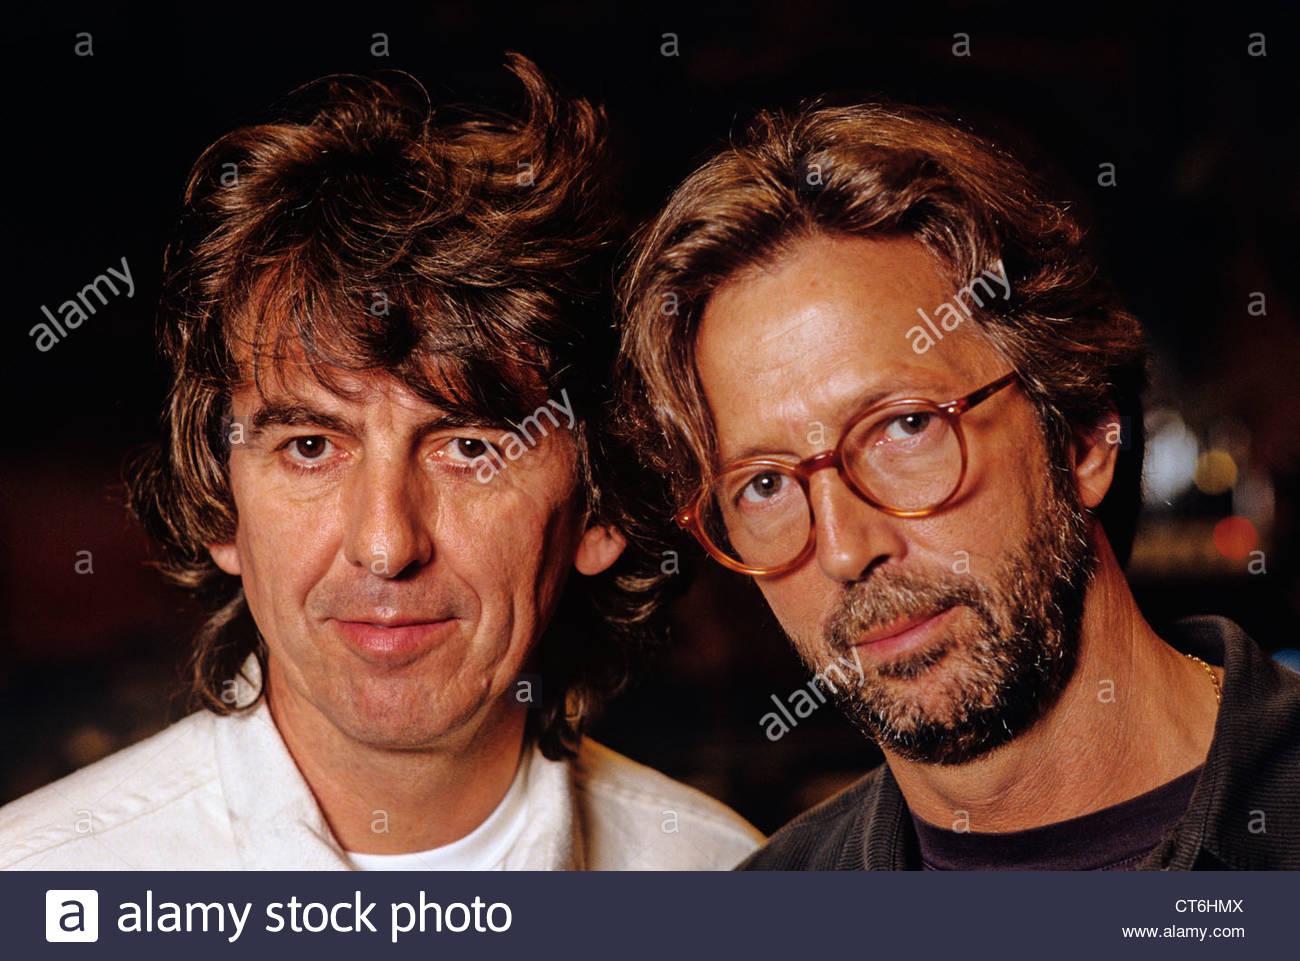 George Harrison and Eric Clapton photographed in London in 1991 - Stock Image